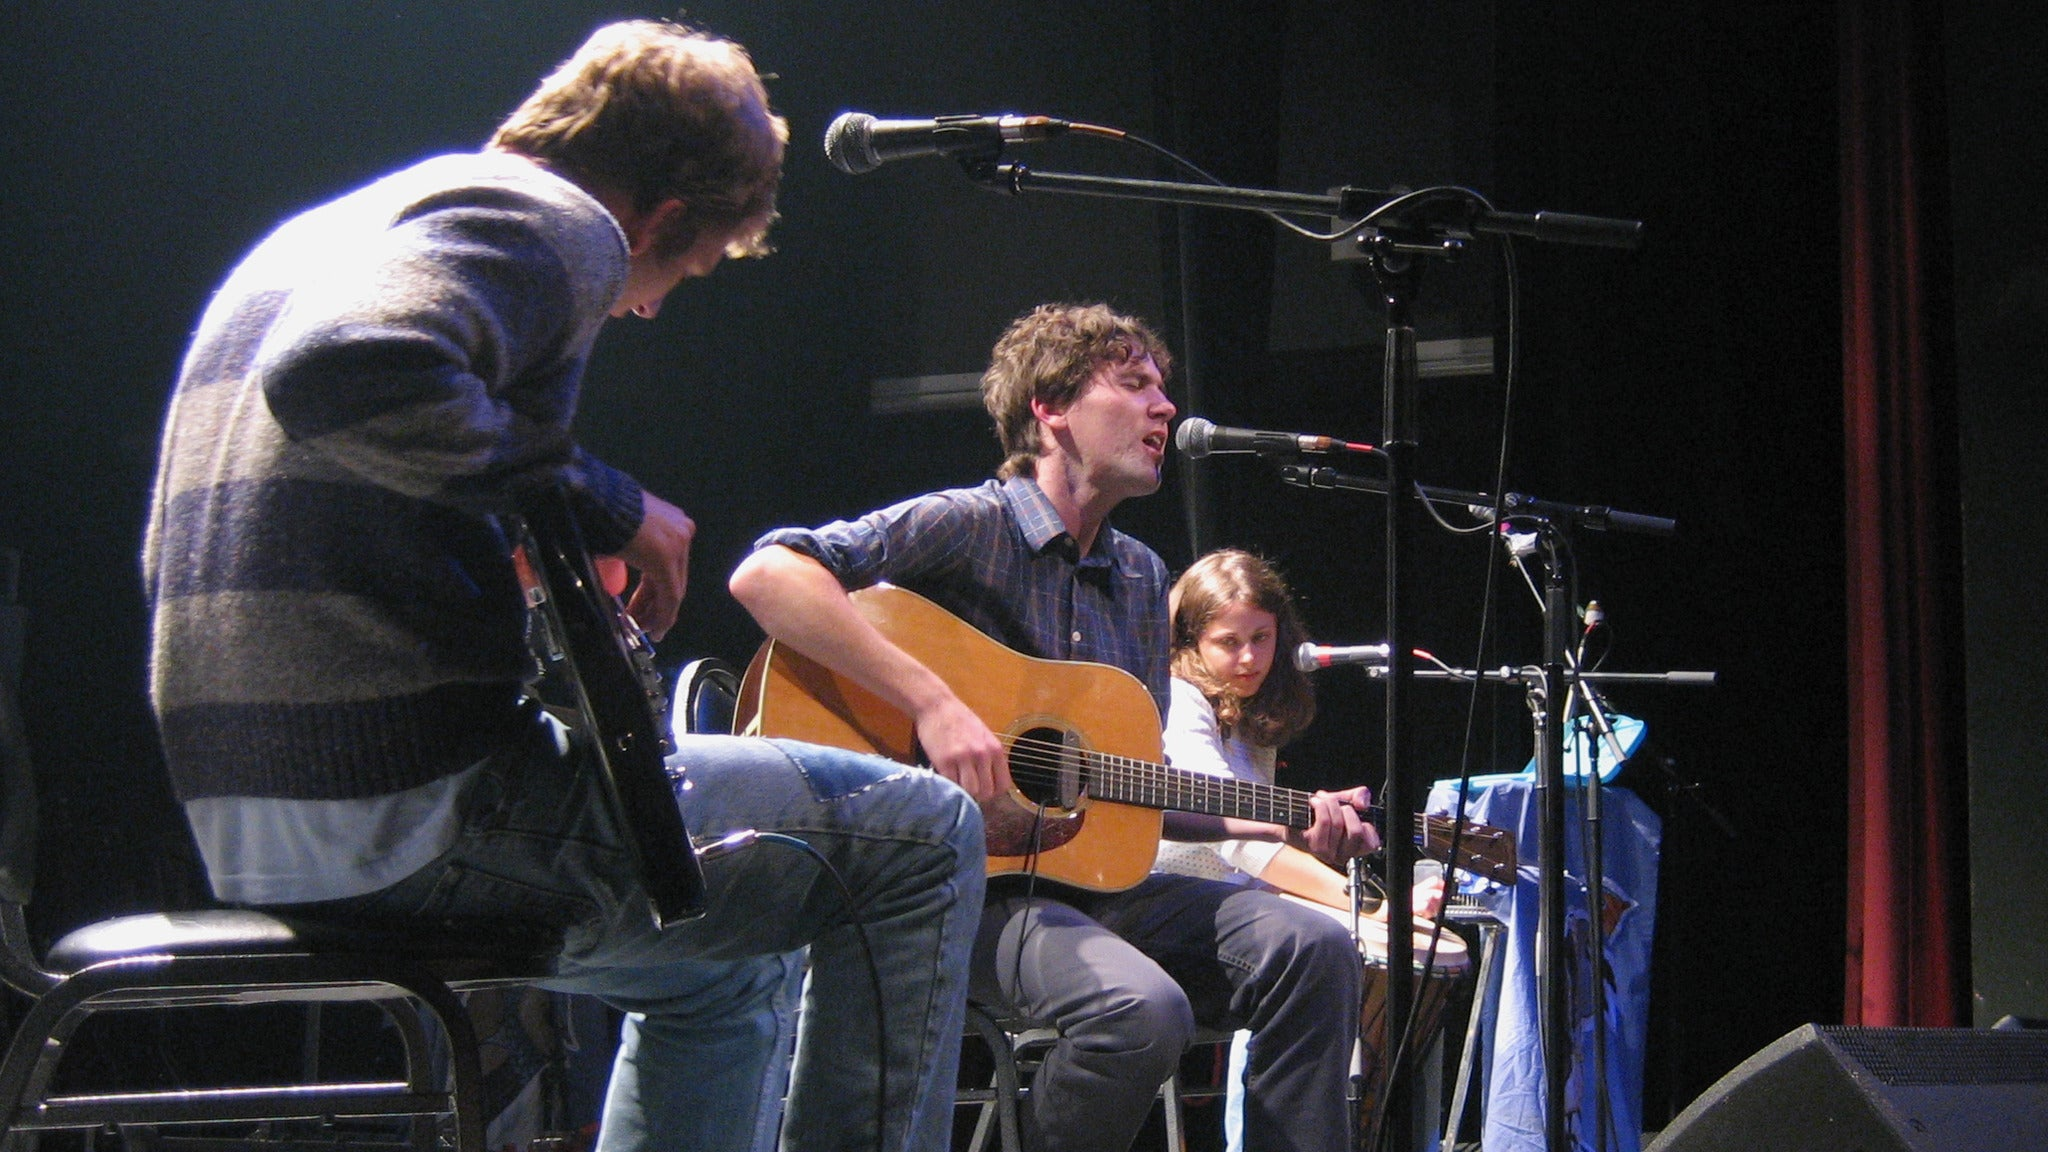 SORRY, THIS EVENT IS NO LONGER ACTIVE<br>Cass McCombs Band / Delicate Steve at Empty Bottle - Chicago, IL 60622